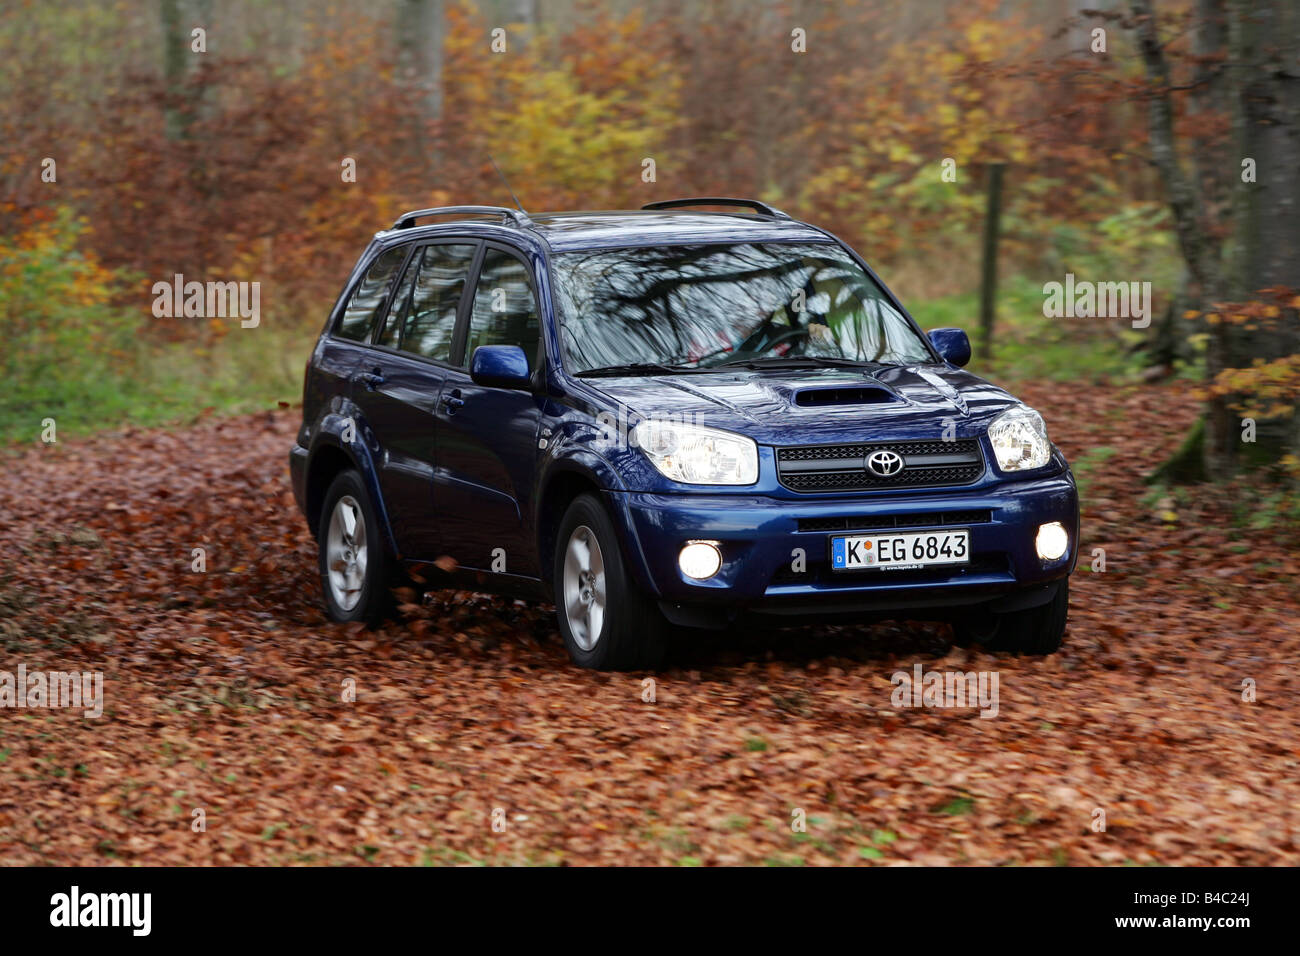 Car toyota rav4 d 4d cross country vehicle model year 2004 blue car toyota rav4 d 4d cross country vehicle model year 2004 blue moving diagonal from the front frontal view country road publicscrutiny Images